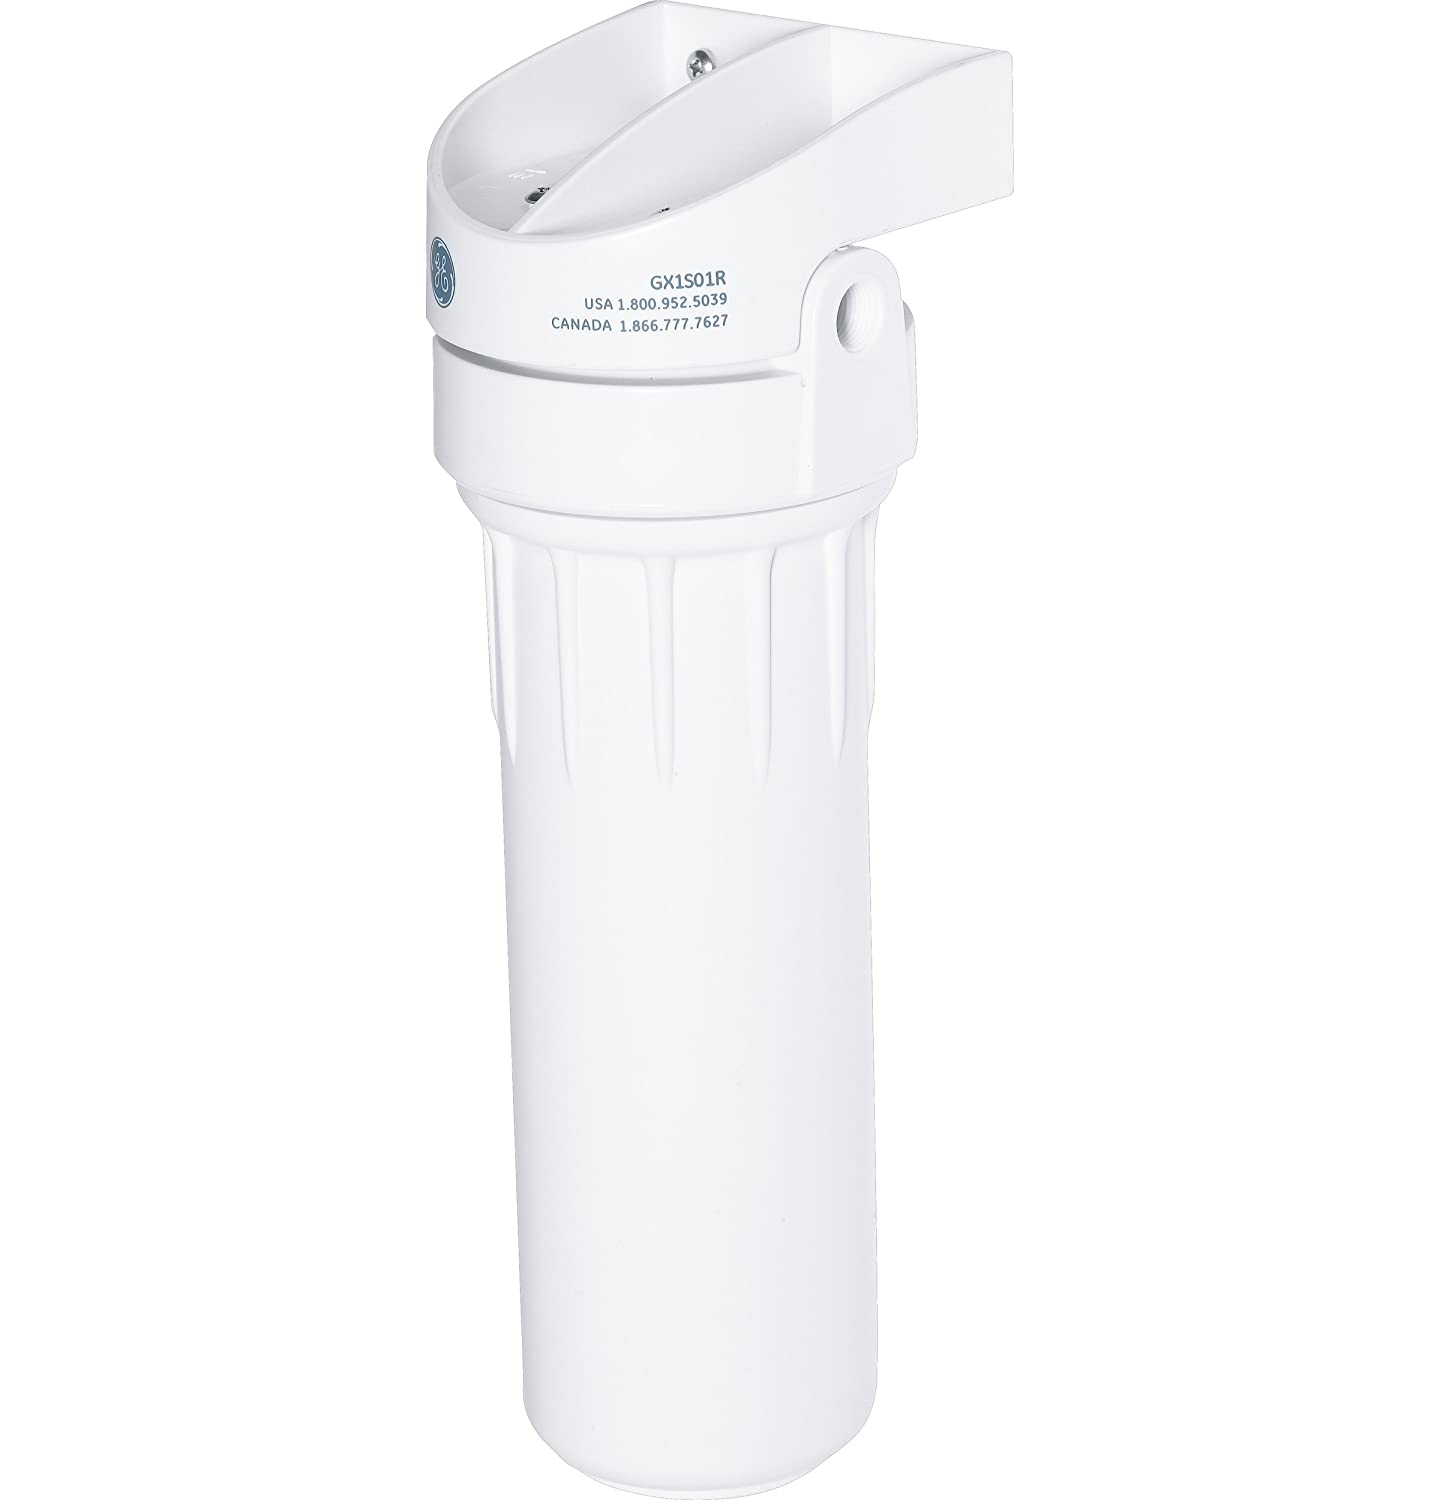 GE GX1S01R Drinking Water Filtration System